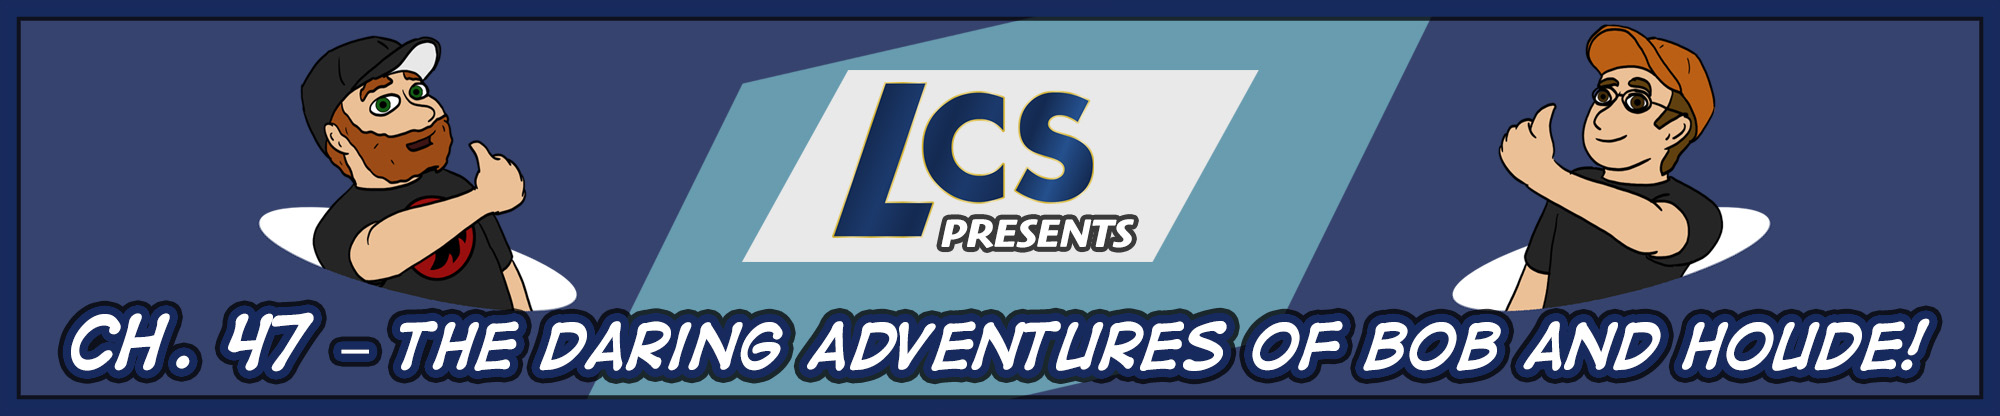 Ch. 47 – The Daring Adventures of Bob and Houde!